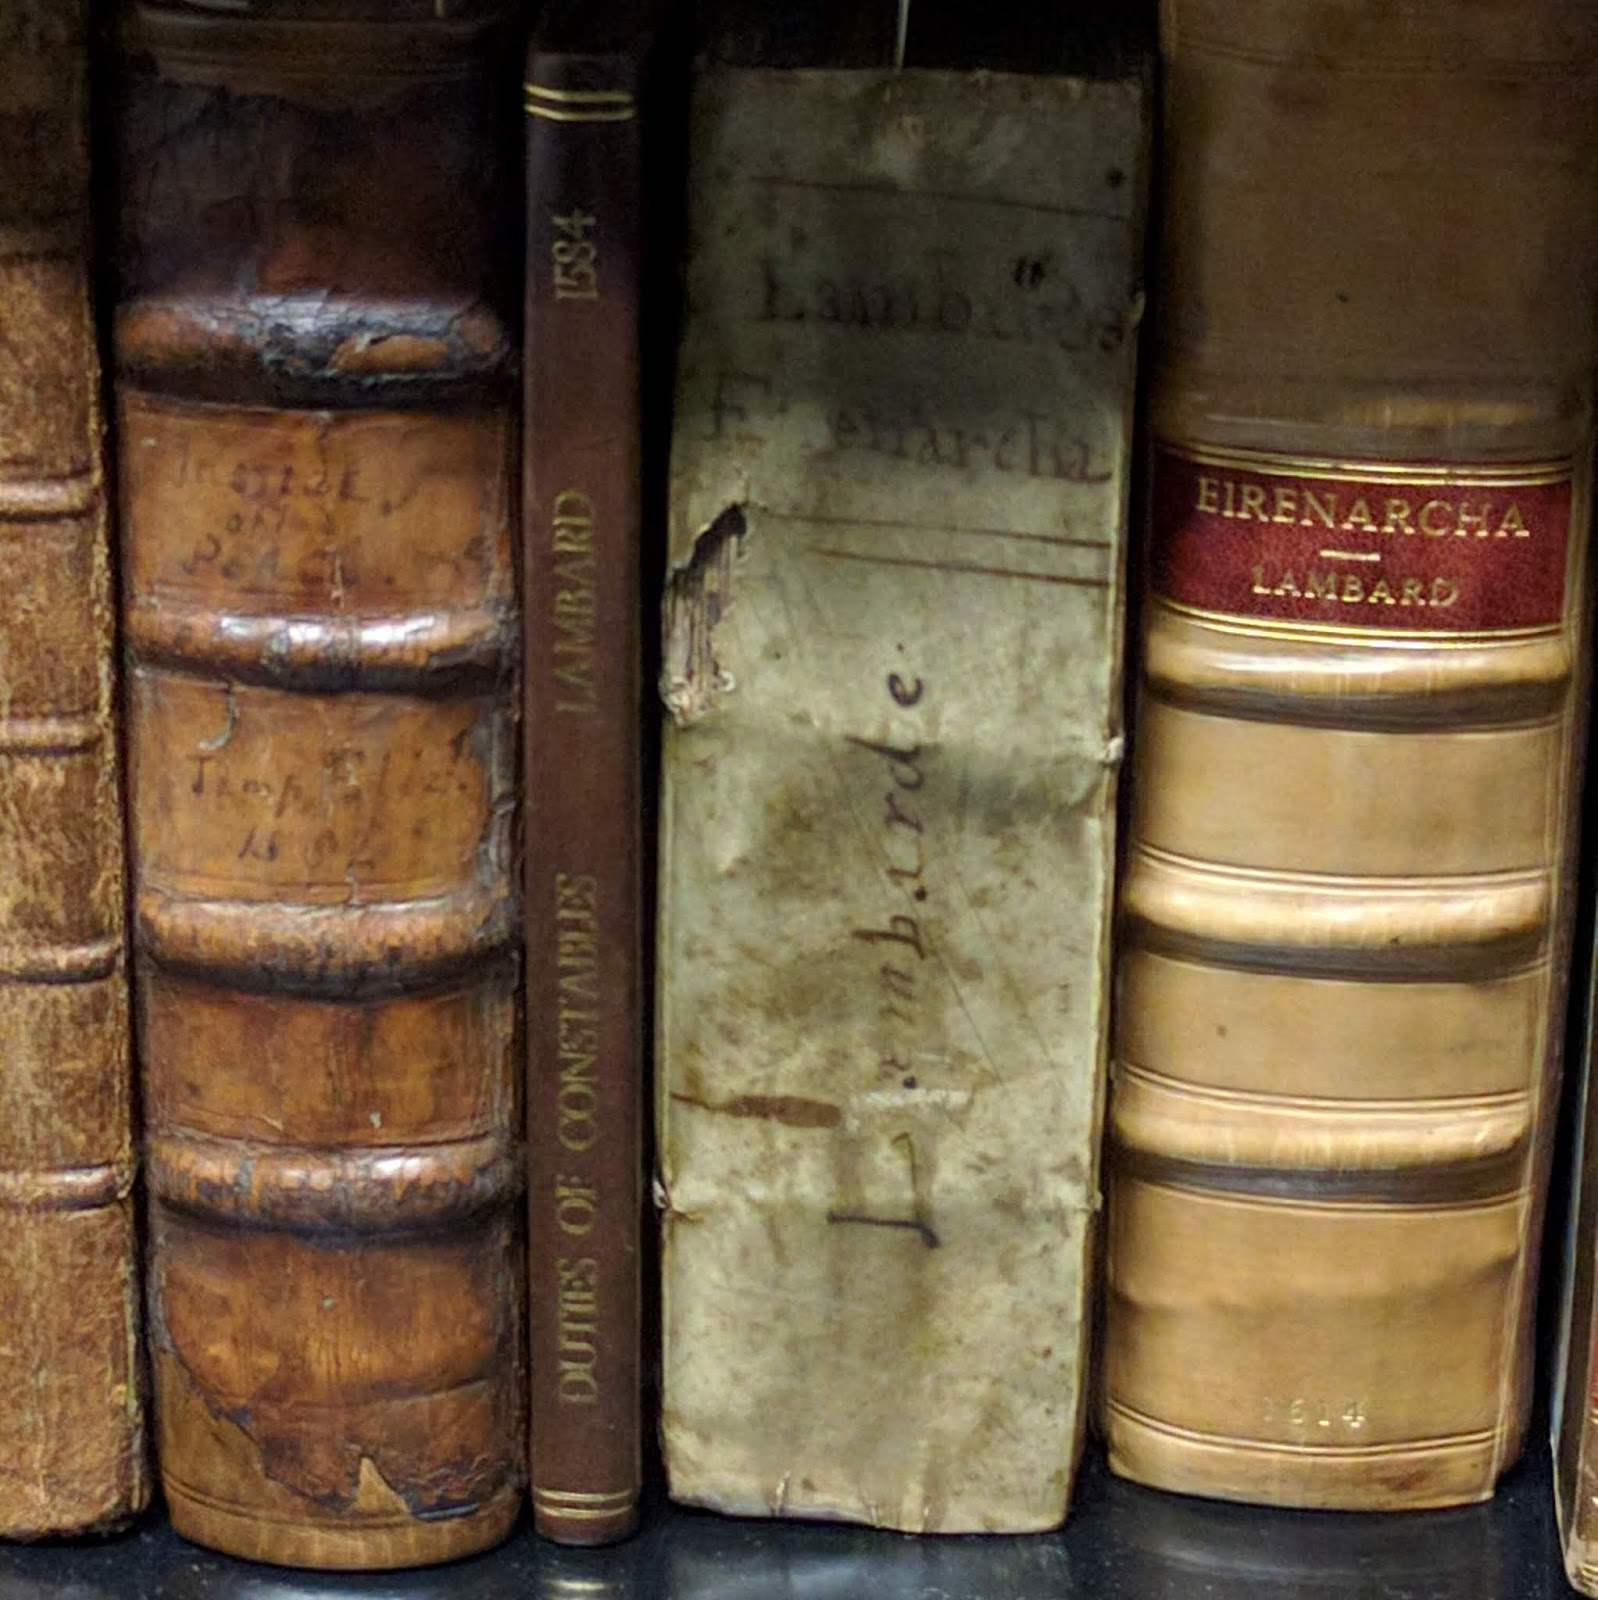 Legal History: Legal History Blog: A Week In The World Of Rare Law Books